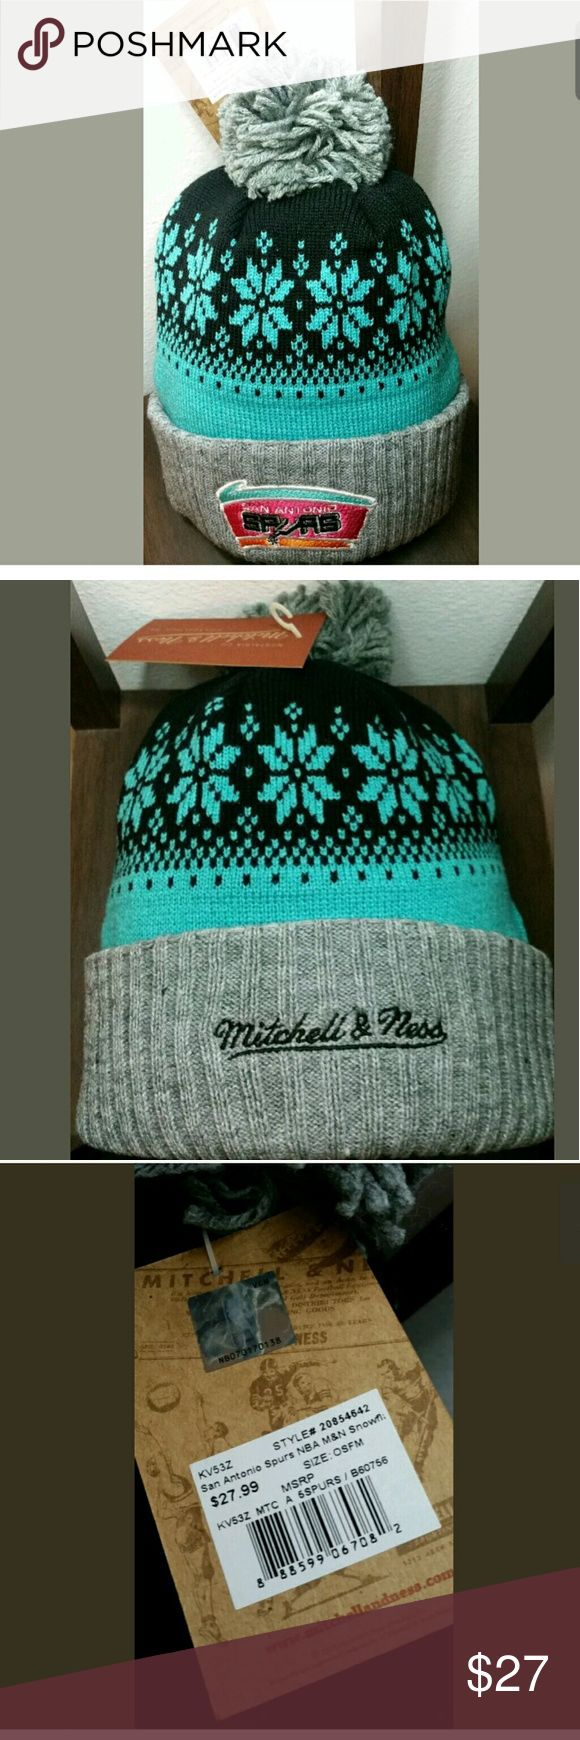 BEANIE MITCHELL NESS NWT GREAT FOR THIS WINTER!! MITCHELL NESS SNOWFLAKE SPURS RETRO KNIT HAT GET THIS FOR A GIFT FOR A SPURS FAN THIS HAT FEATURES THE RETRO SPURS COLORS!! PLEASE BUNDLE ITEMS FOR DISCOUNTS!!! FOLLOW mrl_07_88 on instagram Mitchell & Ness Accessories Hats